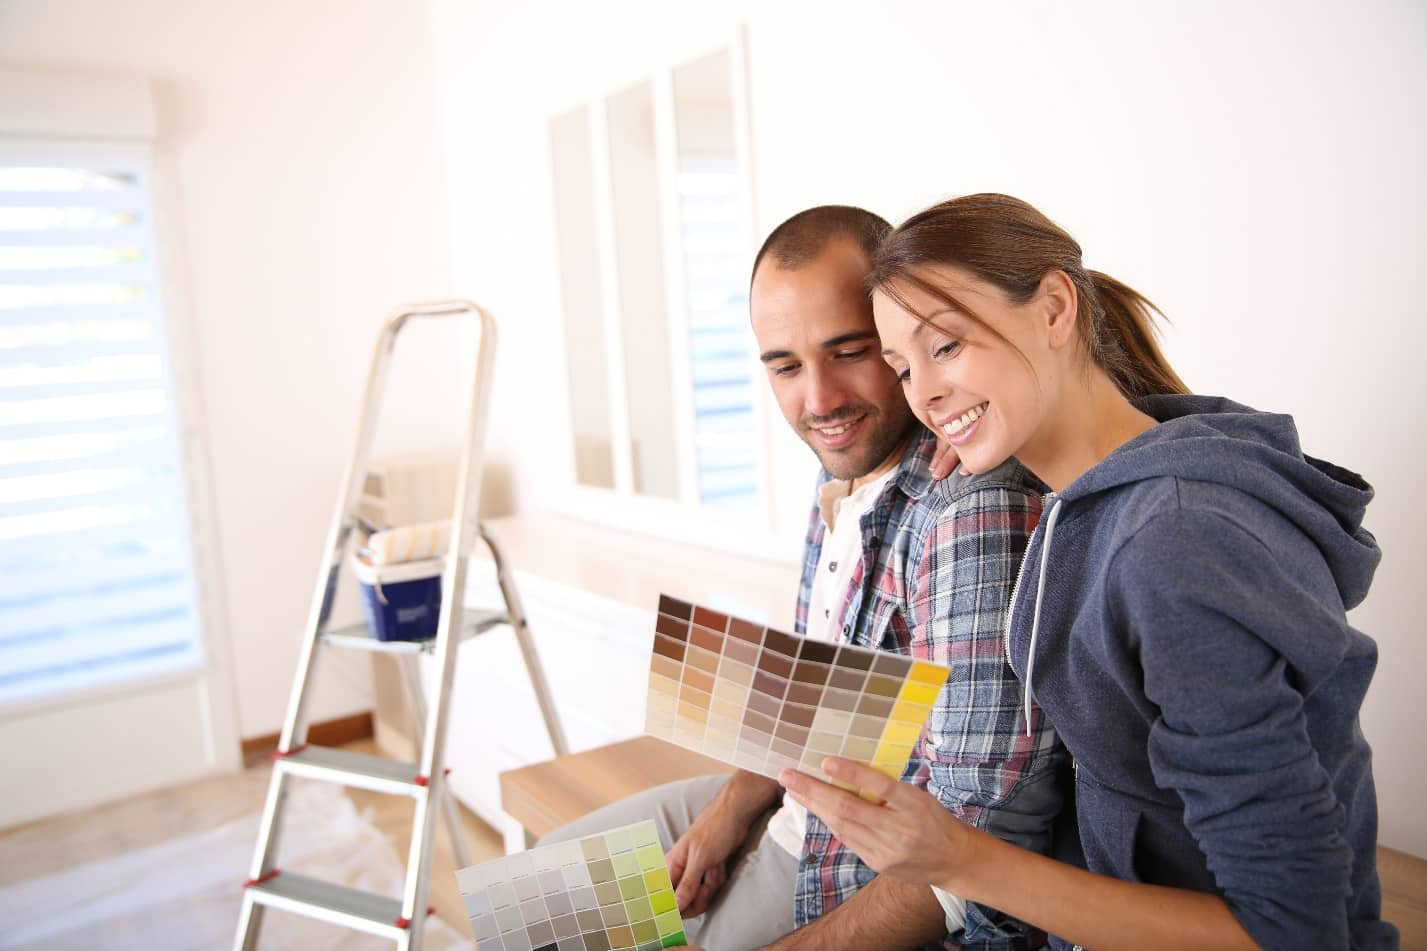 Where to Start When Renovating Your New Home. Before starting works at home